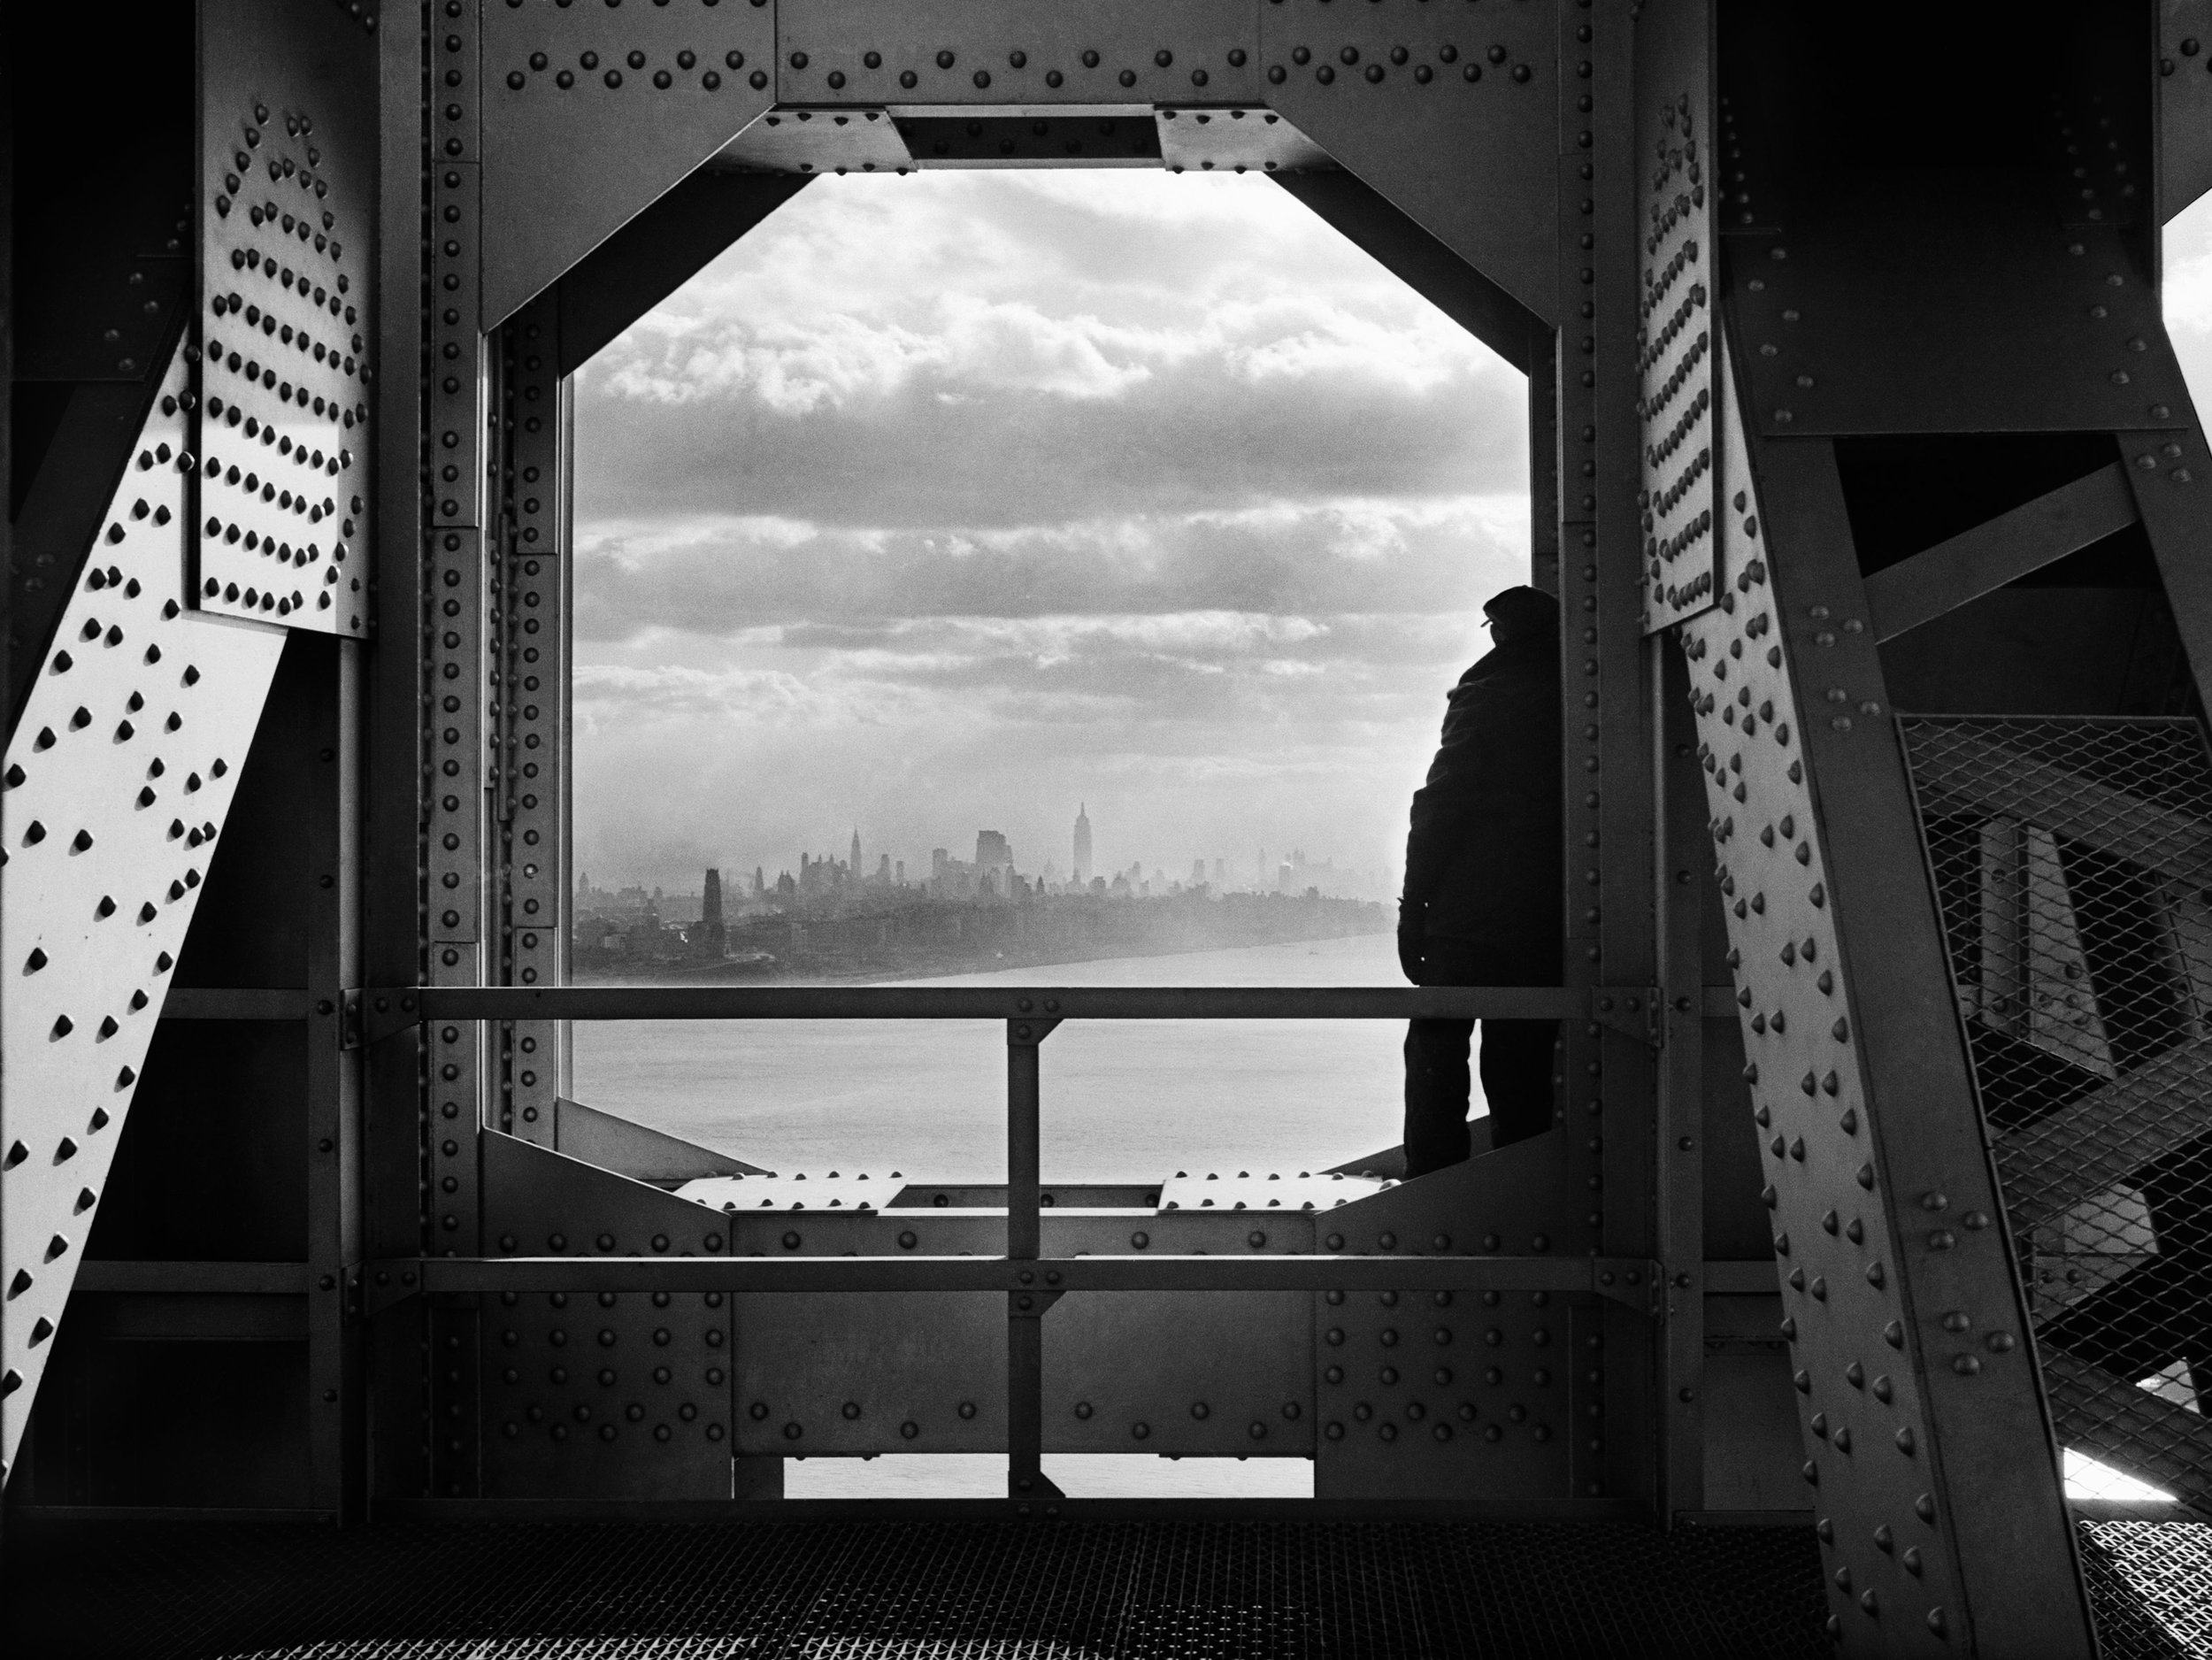 Worker on the New York tower of the George Washington Bridge, December 22, 1936. Photograph by Jack Rosenzwieg, WPA Federal Writers' Project collection, NYC Municipal Archives.